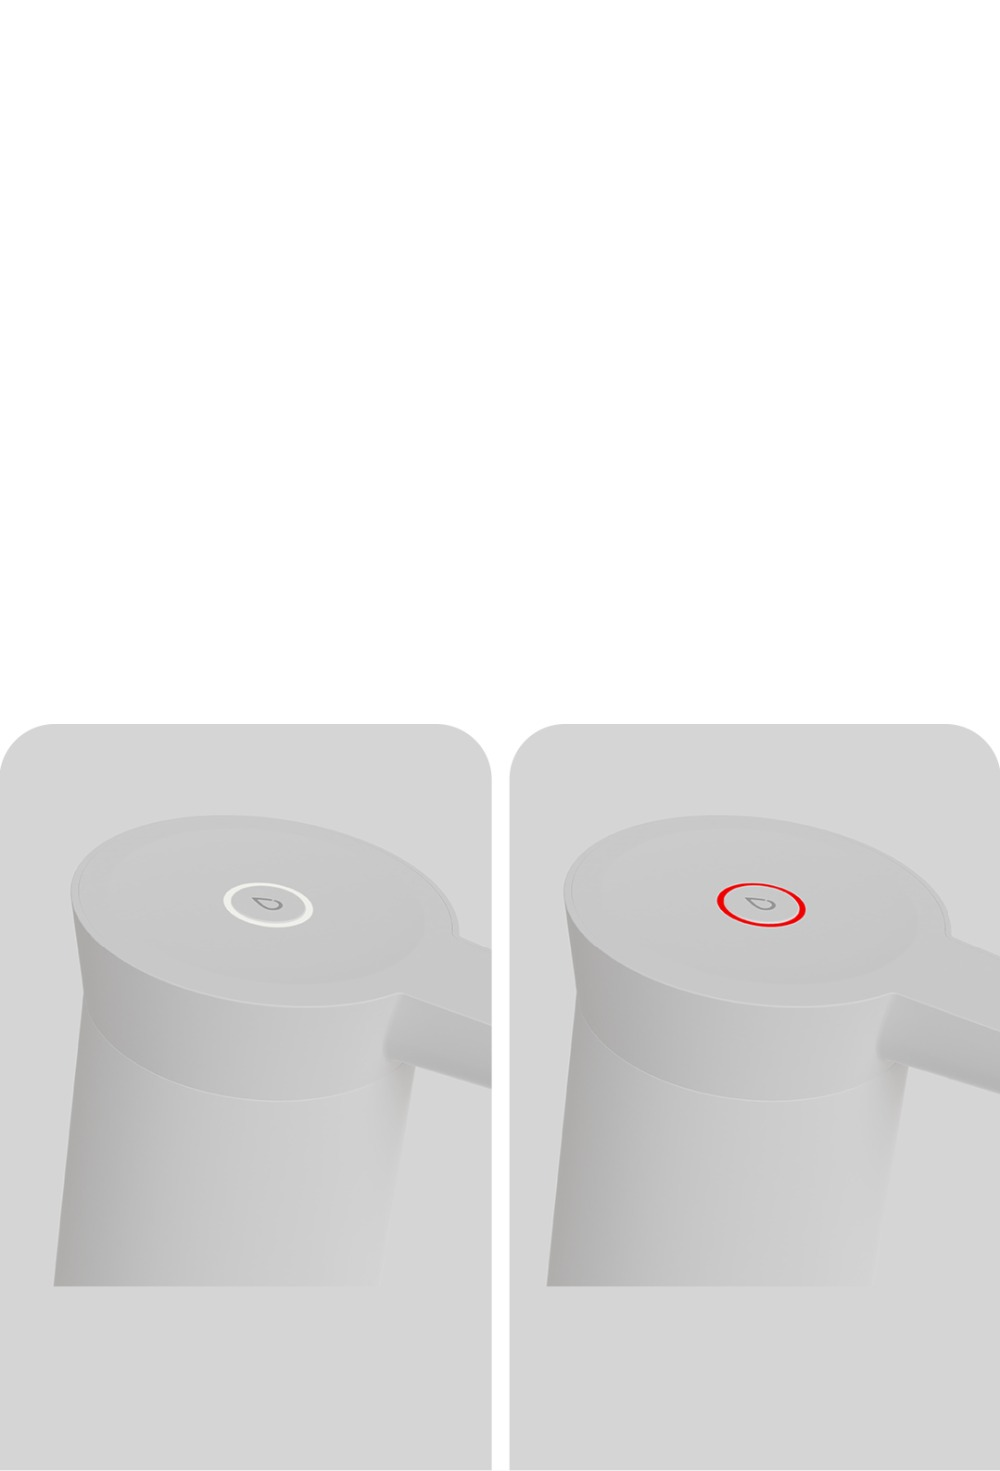 New Sothing Electric Water Dispenser One-key Control Long Battery Life Household Portable Automatic Drink Water Bottle Pump (4)